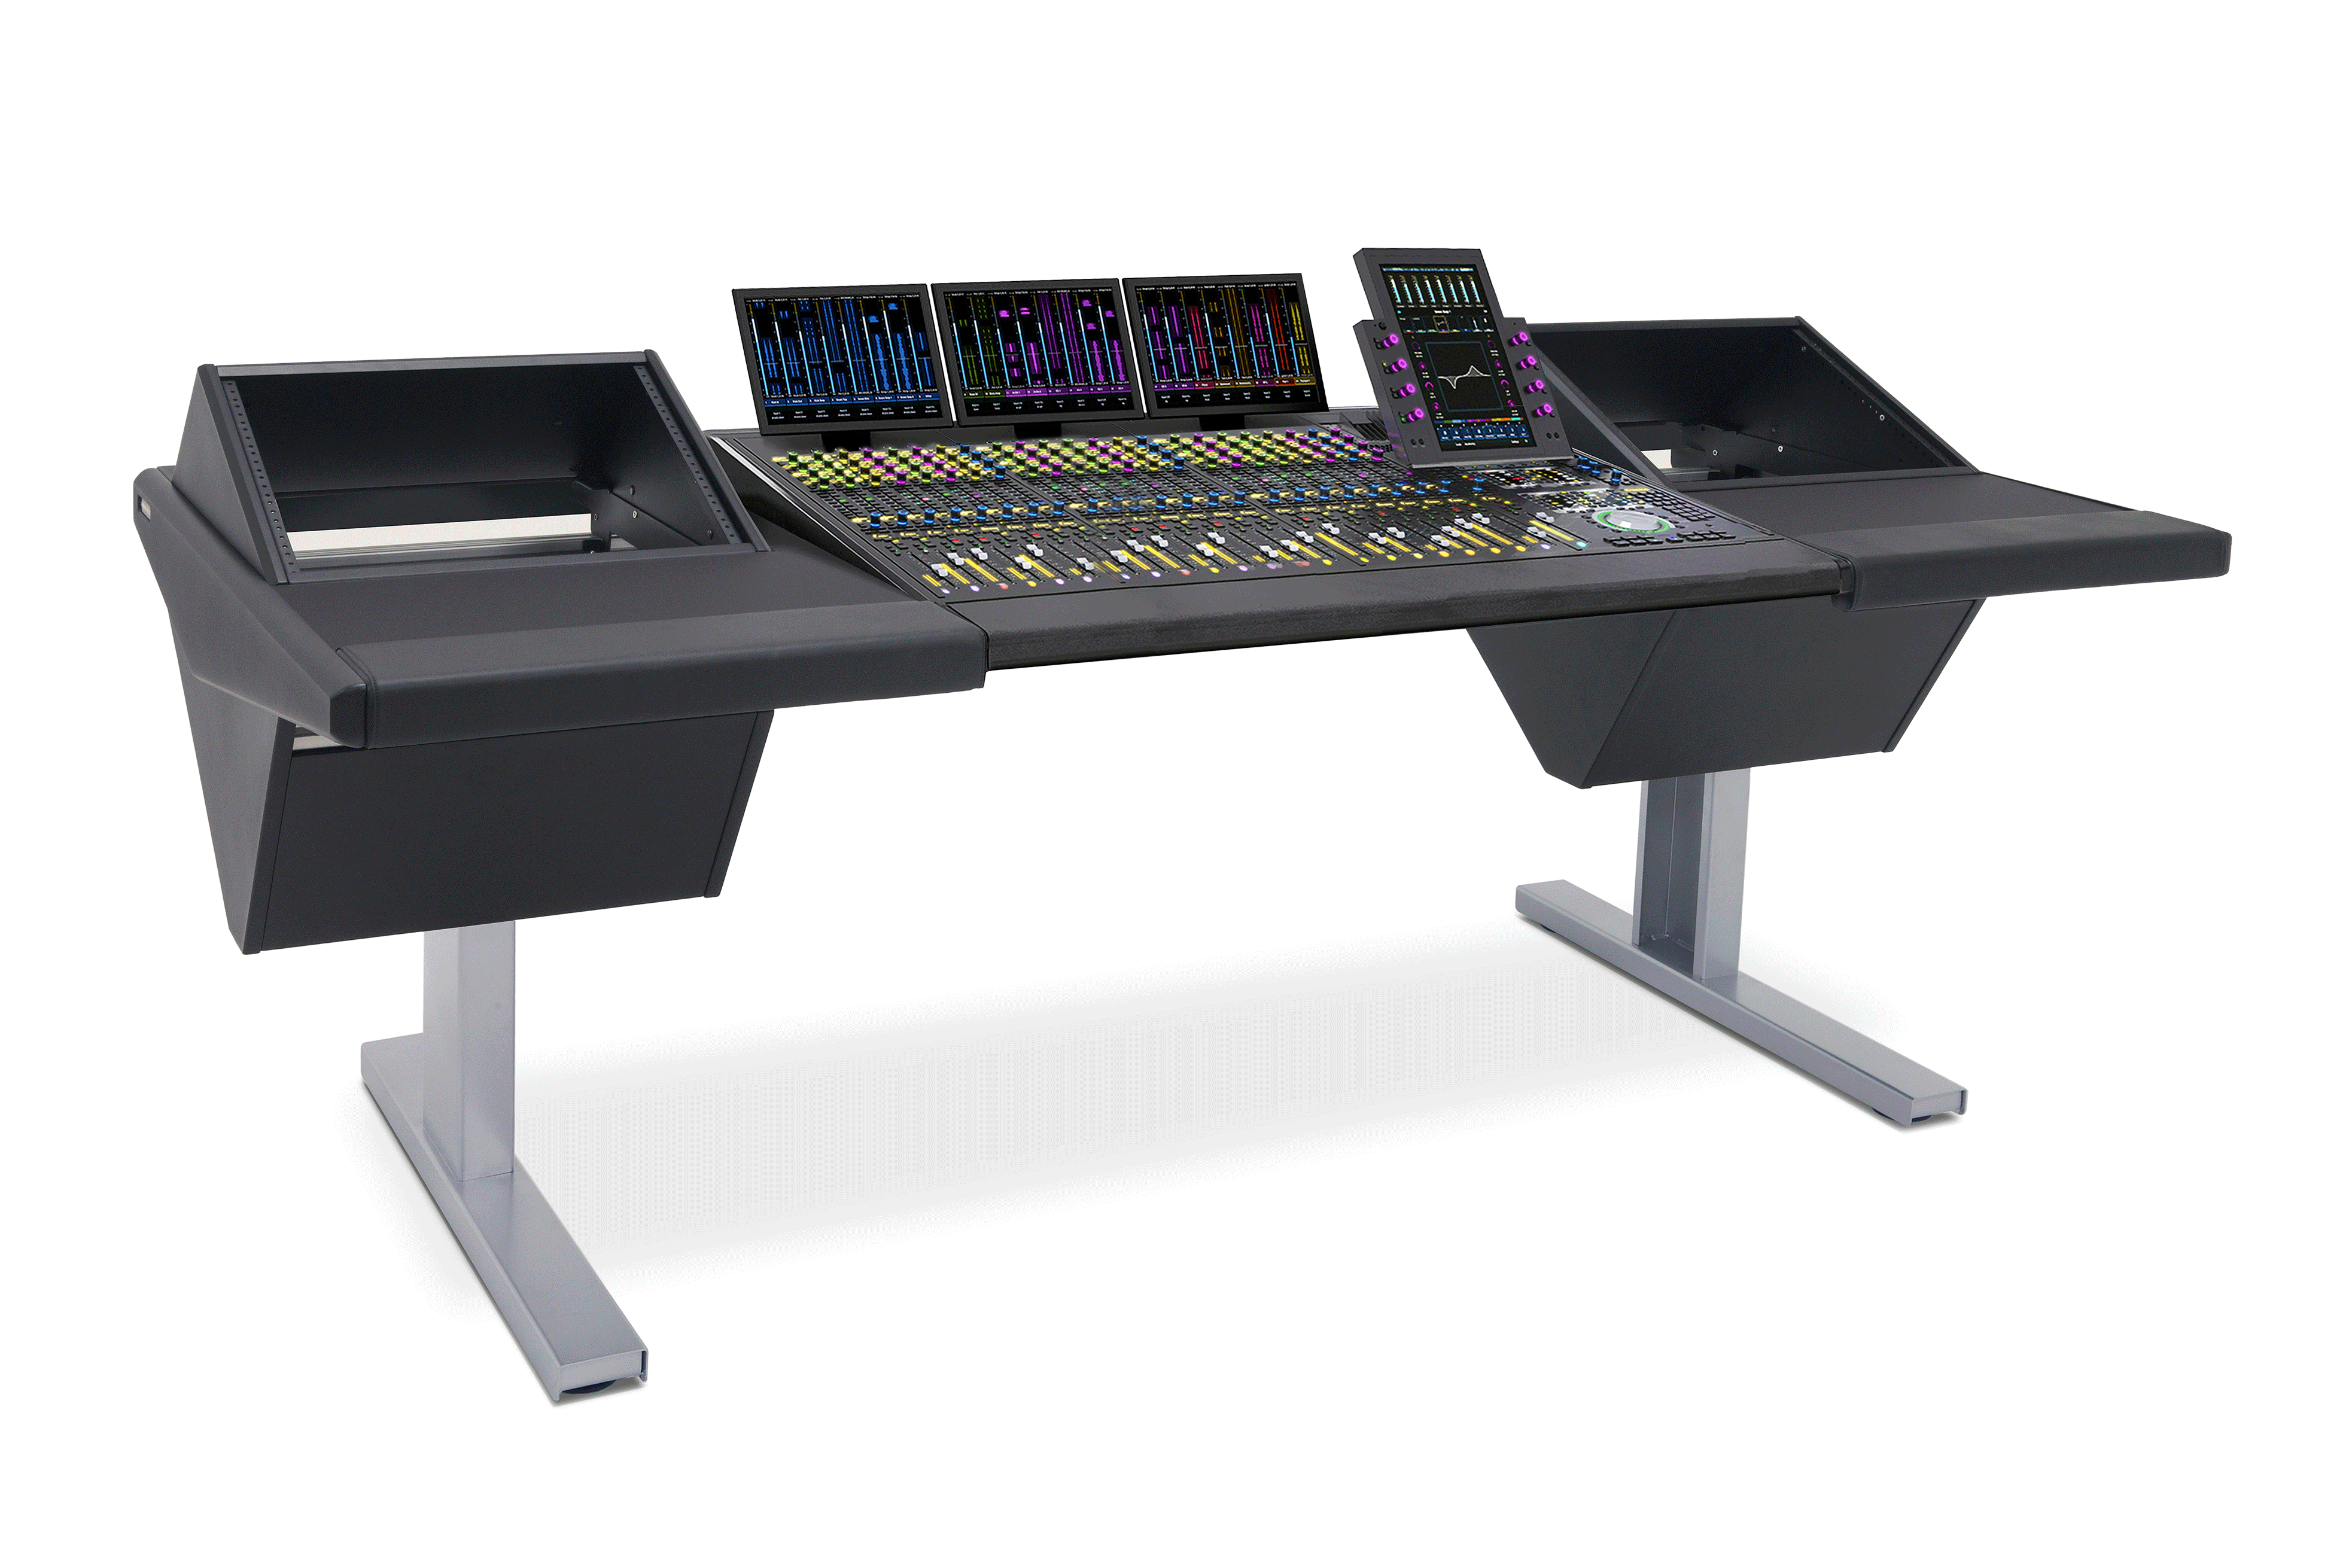 24 Fader System with Rack (L) and Rack (R)